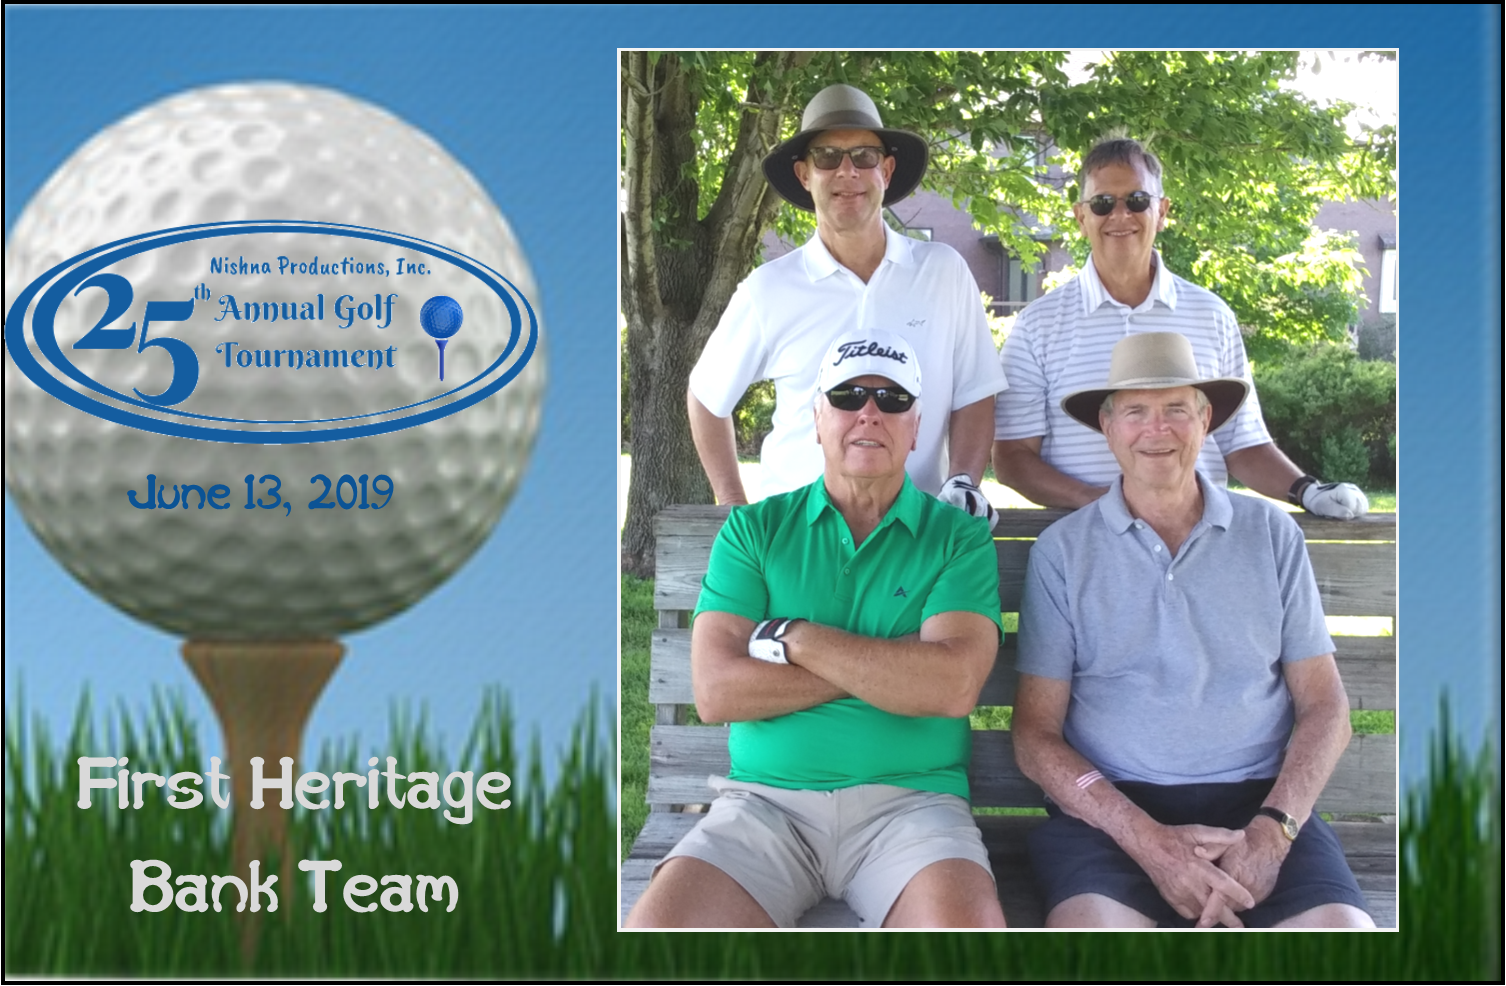 First Heritage Bank Team